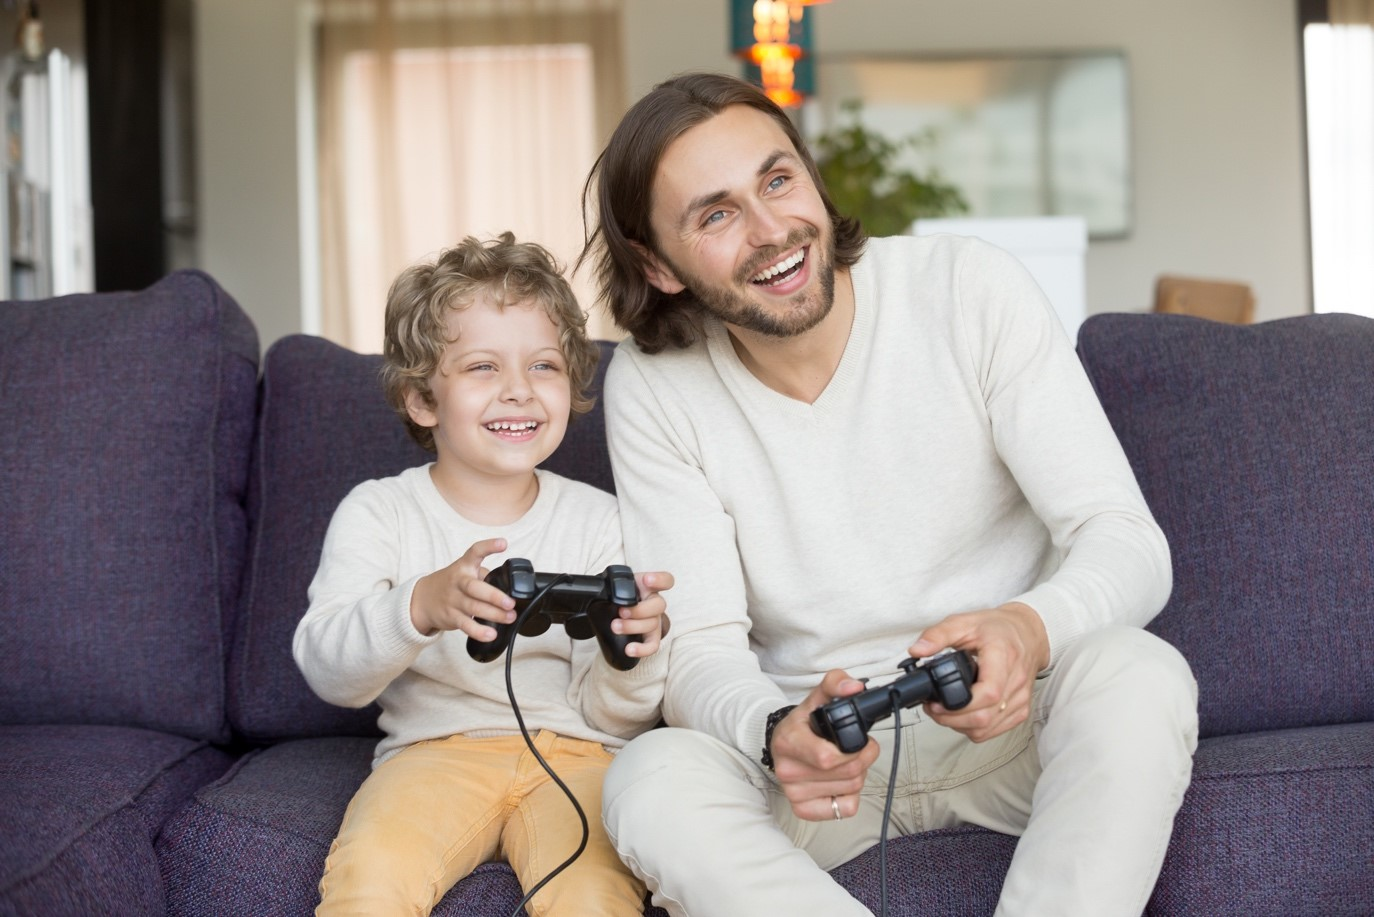 Top Five Best Xbox One Games For Kids In 2019